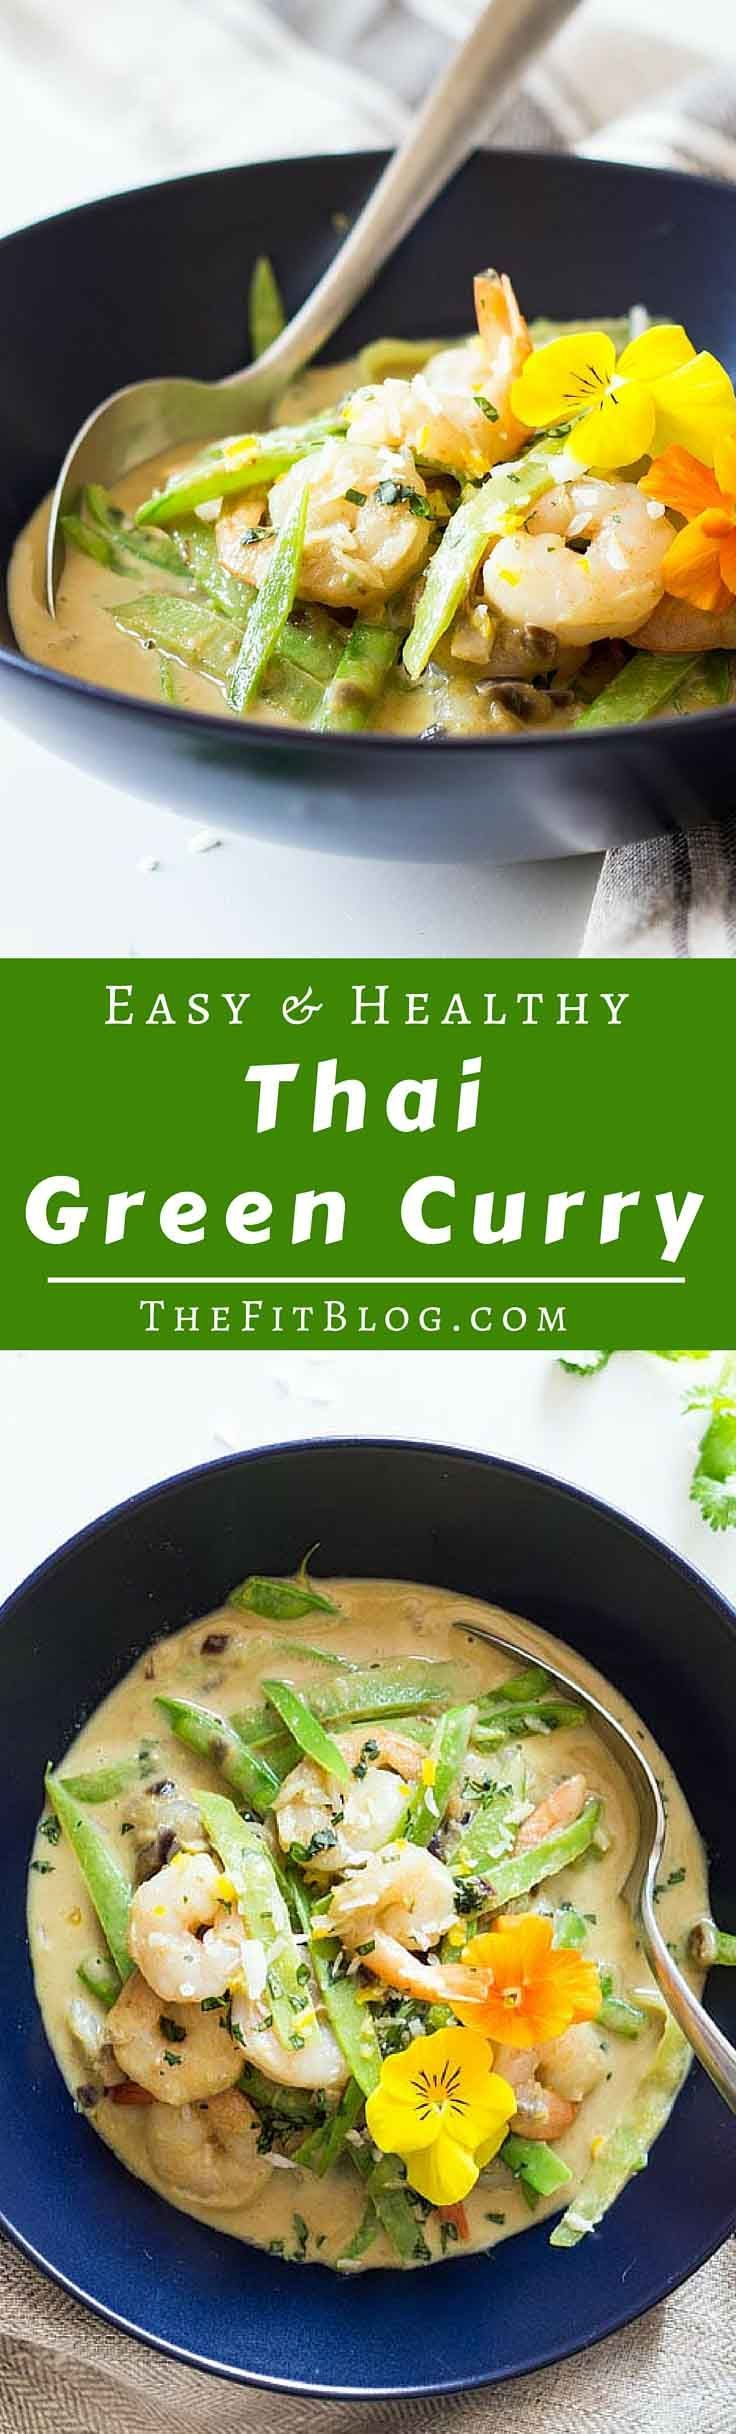 1679 best healthy creative recipes images on pinterest cooking a healthy easy and delicious thai green curry with shrimp whipped up in only 20 forumfinder Choice Image